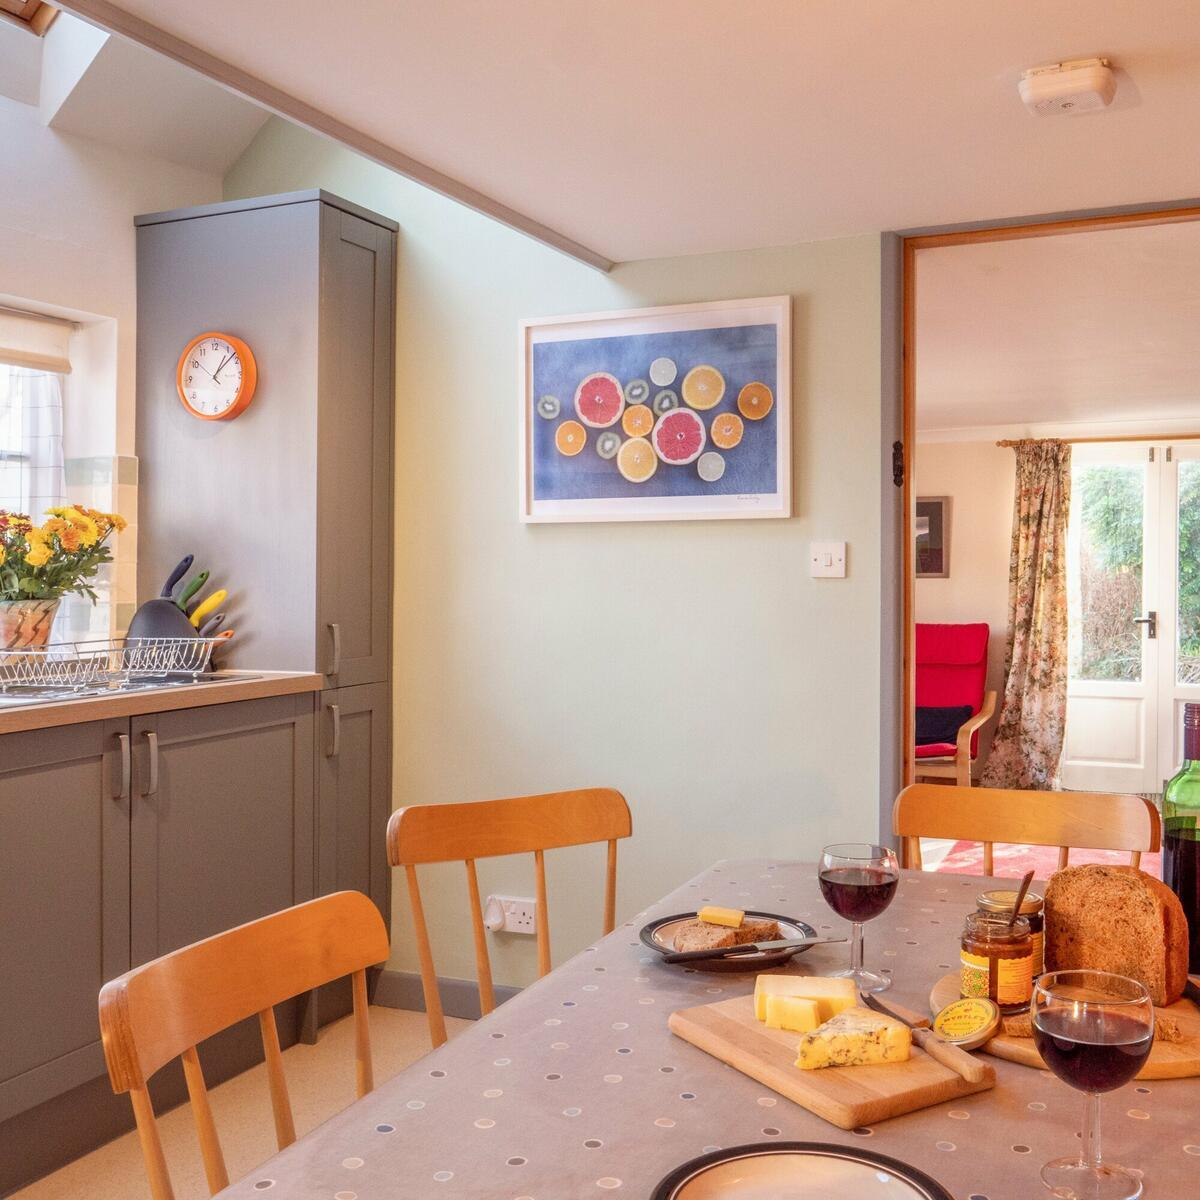 The kitchen, with view through to the living room